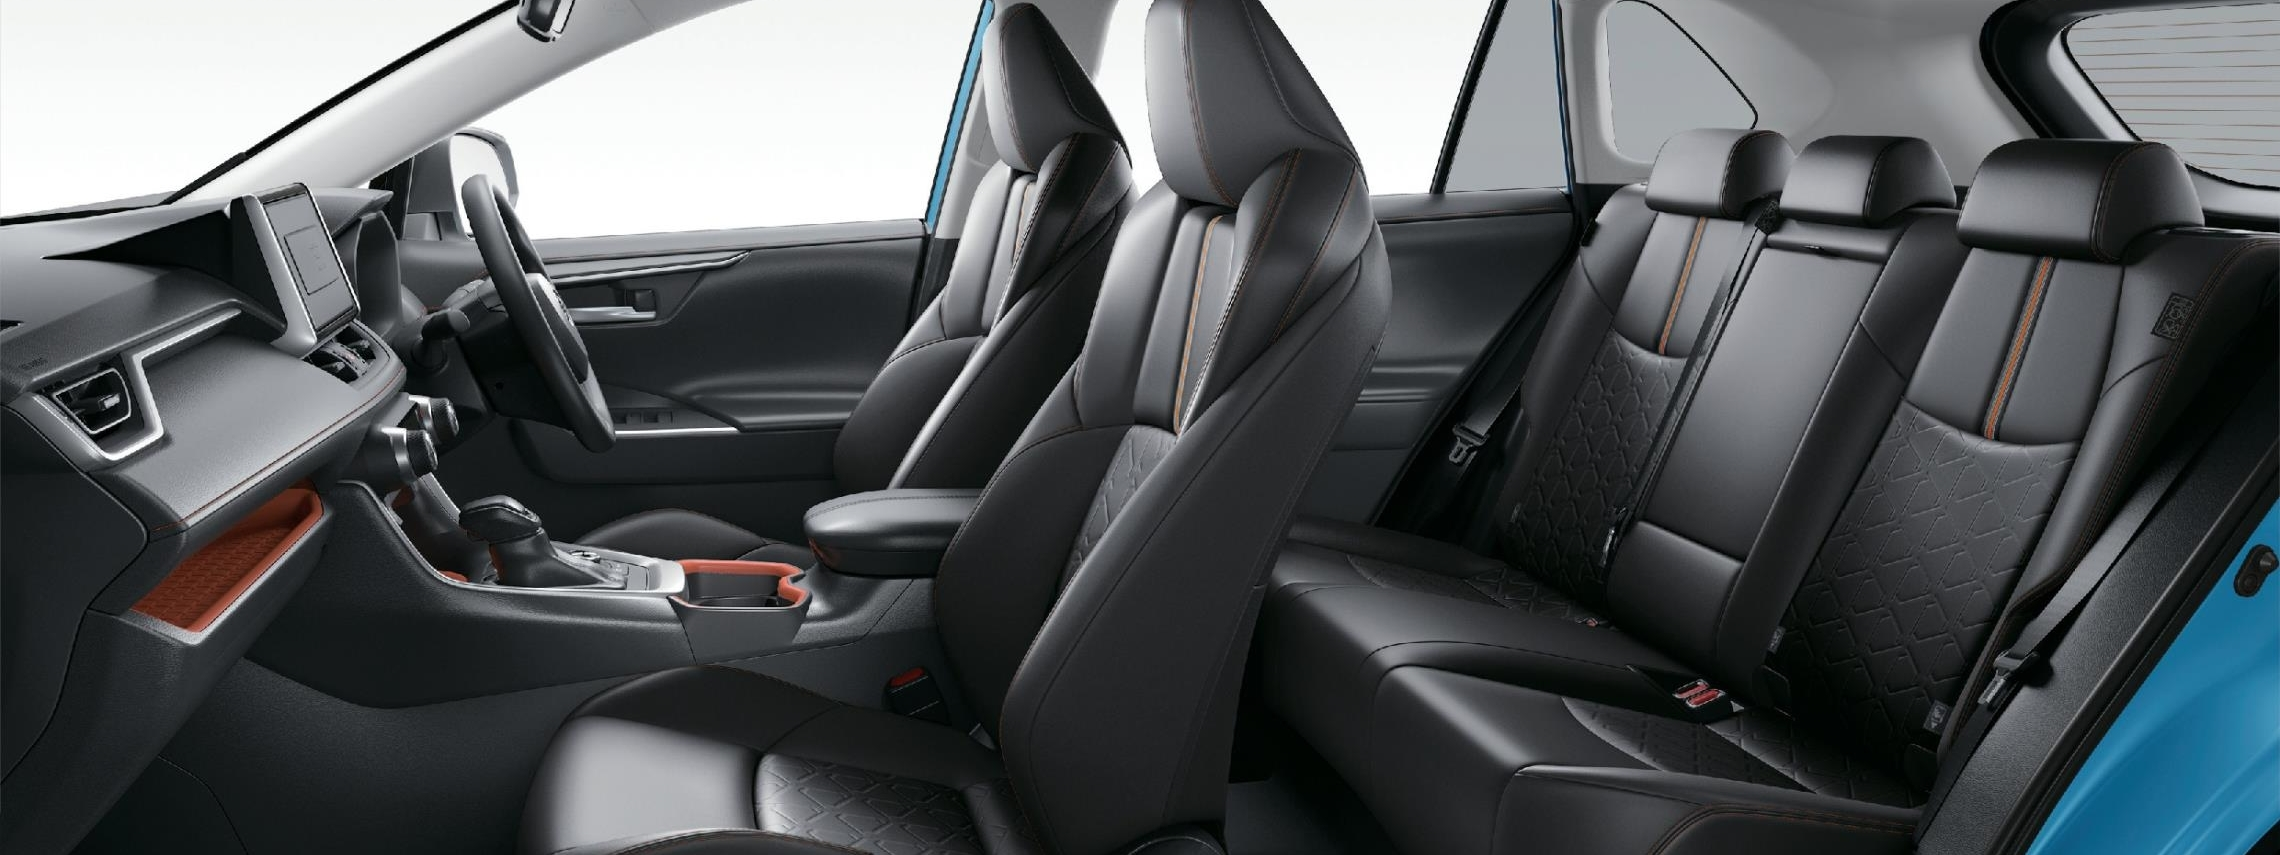 RAV4_Seat_Adventure_EB20BLACK